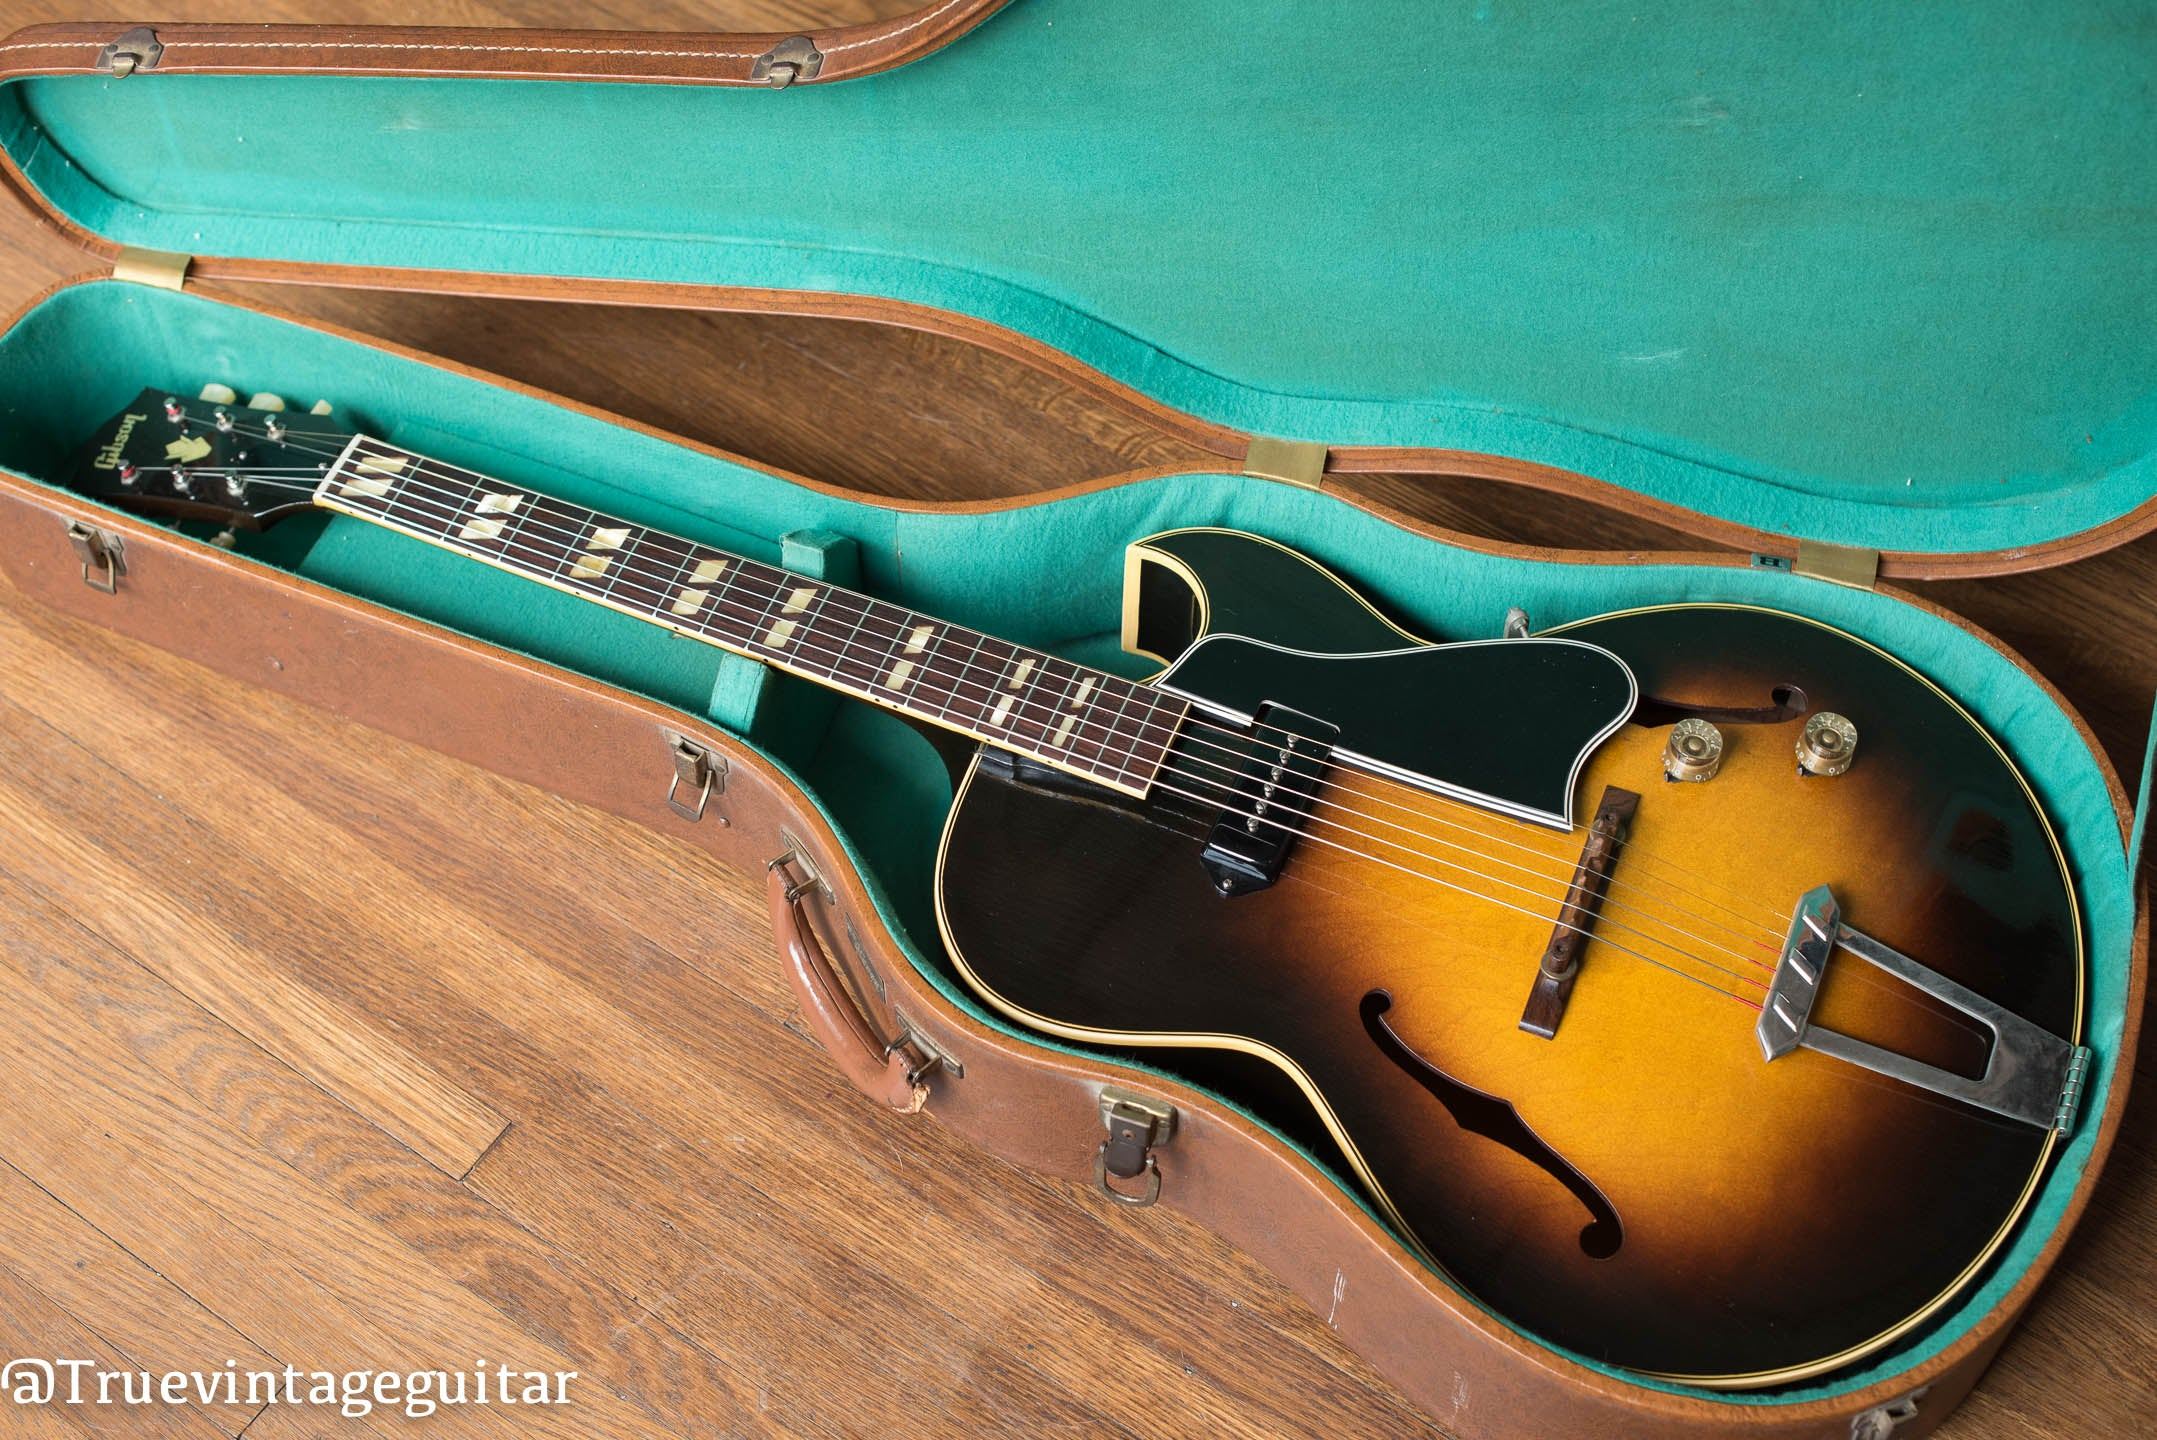 Vintage 1951 Gibson ES-175 electric guitar